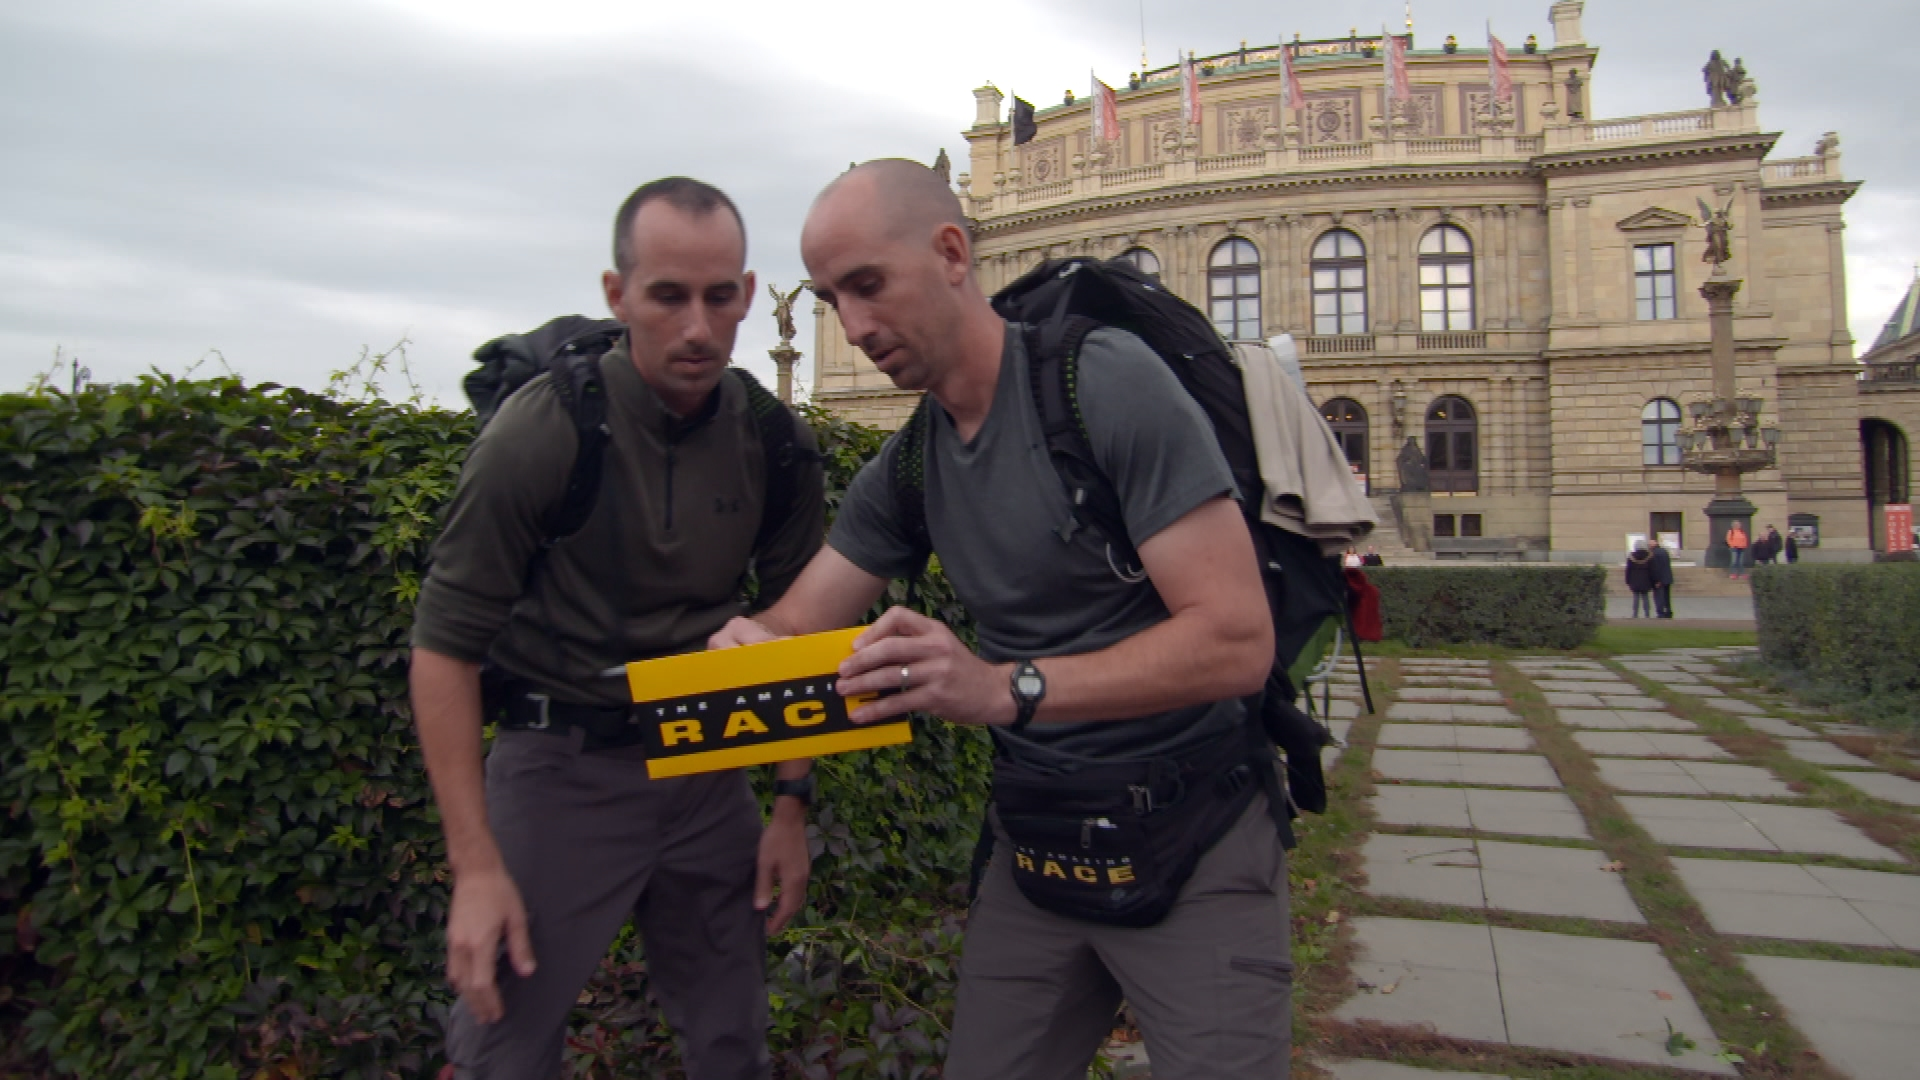 'Amazing Race' production halted over coronavirus concerns